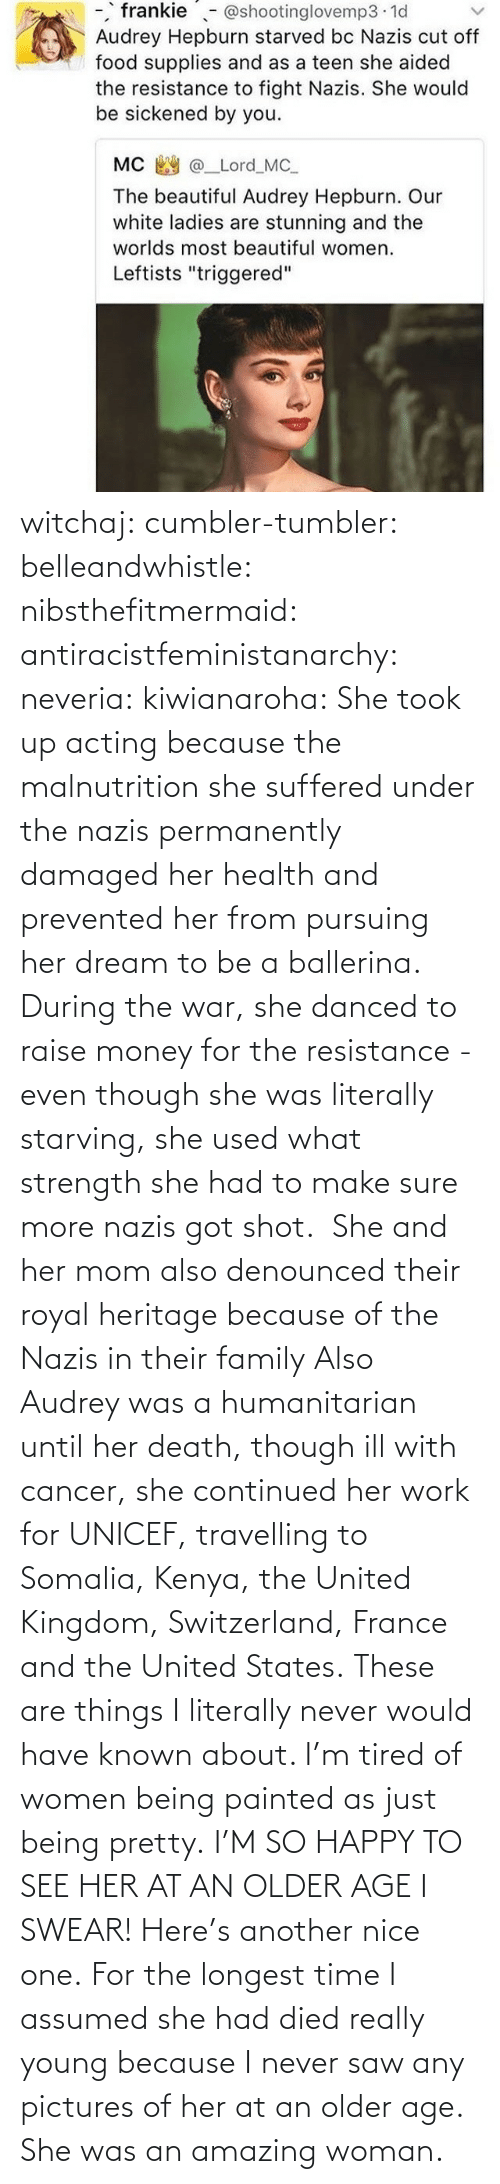 The War: witchaj: cumbler-tumbler:  belleandwhistle:  nibsthefitmermaid:  antiracistfeministanarchy:  neveria:  kiwianaroha: She took up acting because the malnutrition she suffered under the nazis permanently damaged her health and prevented her from pursuing her dream to be a ballerina. During the war, she danced to raise money for the resistance - even though she was literally starving, she used what strength she had to make sure more nazis got shot.  She and her mom also denounced their royal heritage because of the Nazis in their family  Also Audrey was a humanitarian until her death, though ill with cancer, she continued her work for UNICEF, travelling to Somalia, Kenya, the United Kingdom, Switzerland, France and the United States.  These are things I literally never would have known about. I'm tired of women being painted as just being pretty.  I'M SO HAPPY TO SEE HER AT AN OLDER AGE I SWEAR!  Here's another nice one.   For the longest time I assumed she had died really young because I never saw any pictures of her at an older age.  She was an amazing woman.